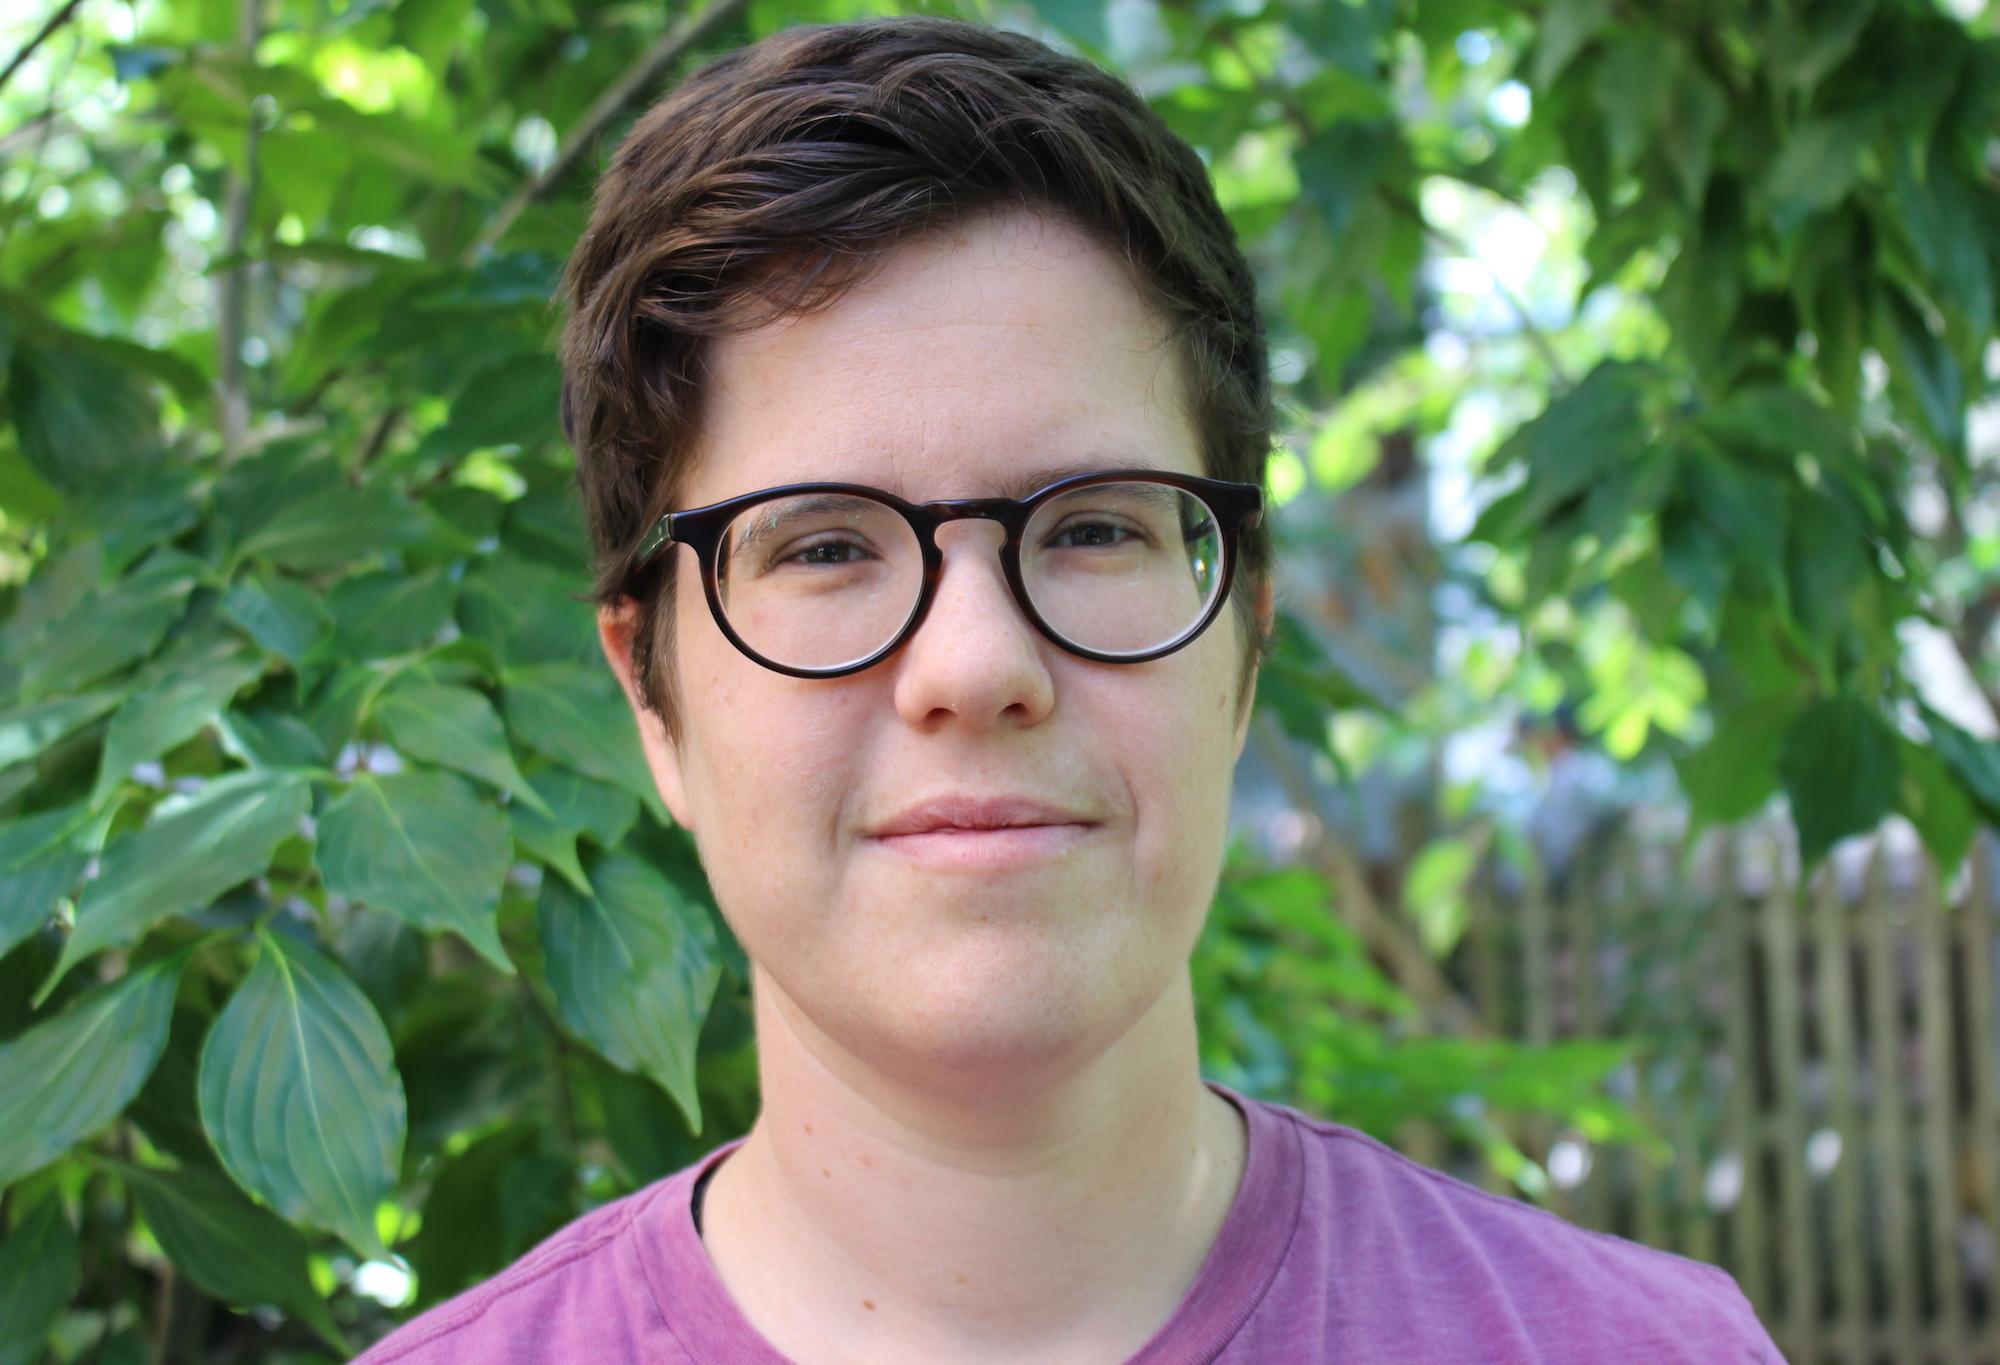 Ada McMahon makes documentary films and other nonfiction media. Much of her video work is made in collaboration with people who tell their stories in service to shifting power, fueling grassroots organizing, and challenging interlocking systems oppression. She grew up in Cambridge, Massachusetts, and has been involved in community media making on the Gulf Coast with Bridge The Gulf Project,  Ten Years After Katrina  (produced by the Greater New Orleans Organizers Roundtable), and Land of Opportunity. Ada holds a bachelor's degree from Harvard University and is currently an MFA candidate in Film, Video, Animation, and New Genres at the University of Wisconsin – Milwaukee.              .